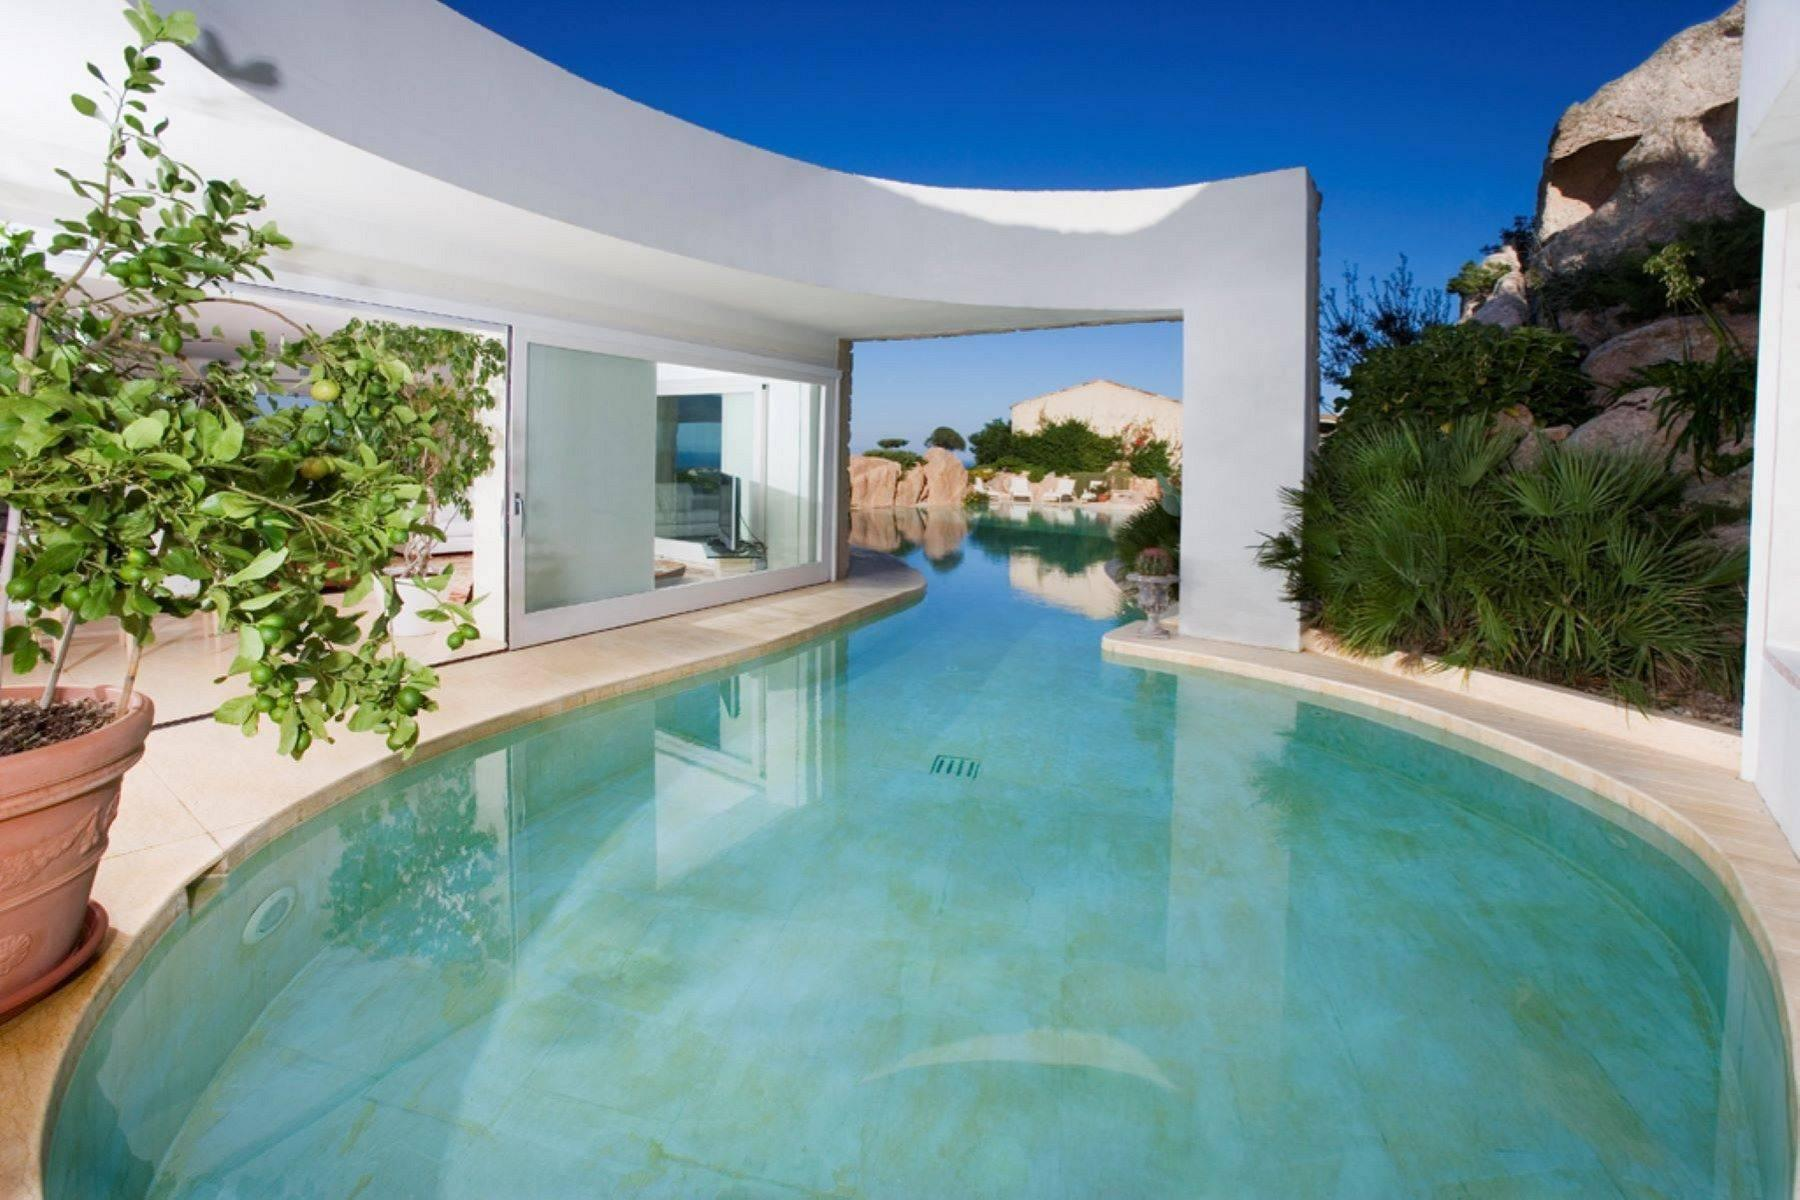 Exclusive property with stunning sea views overlooking the Costa Smeralda - 4